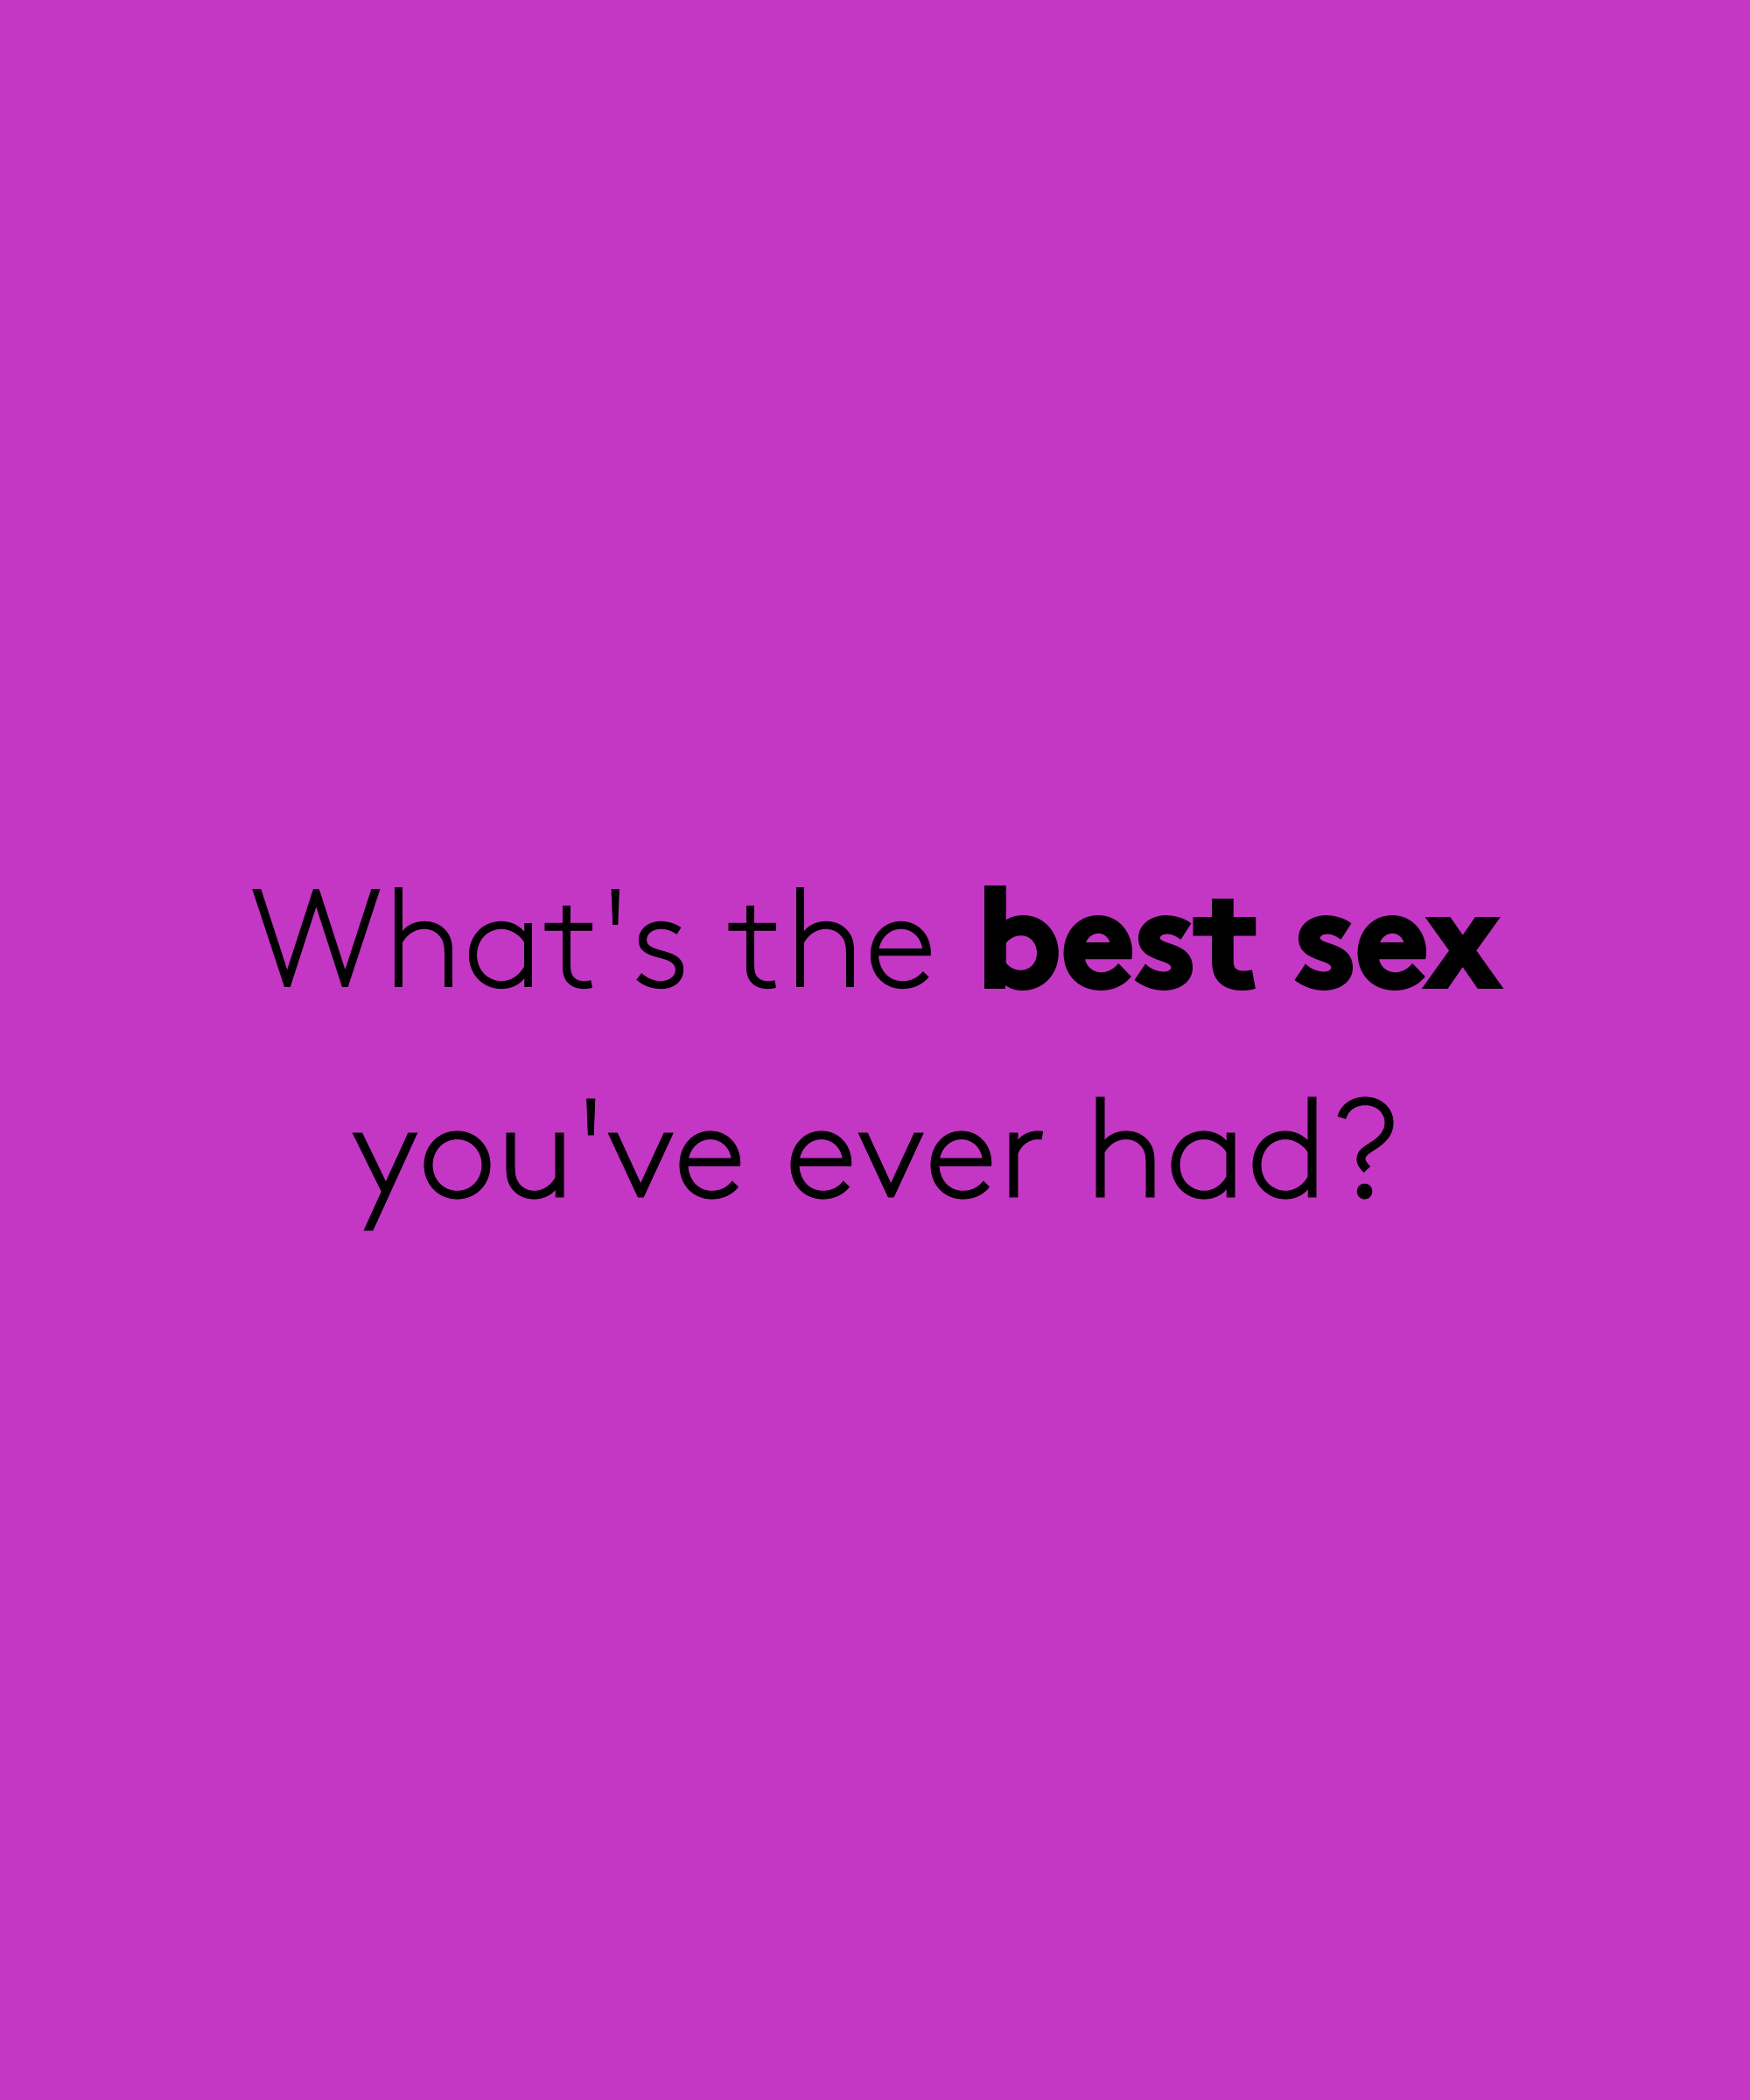 best sex youve ever had